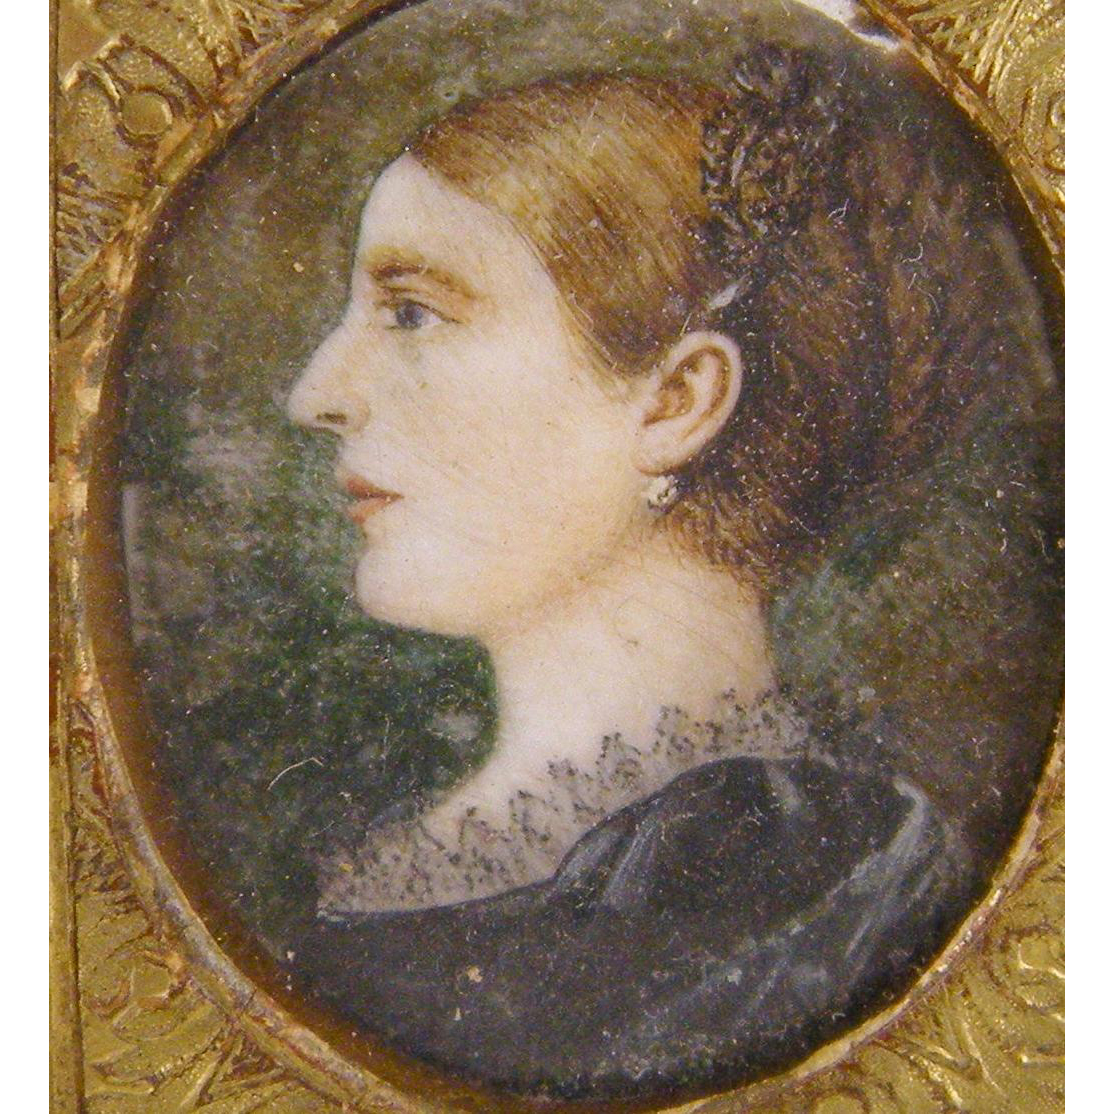 Antique  1800's ENGLISH WOMAN with Pastoral Background Miniature Portrait